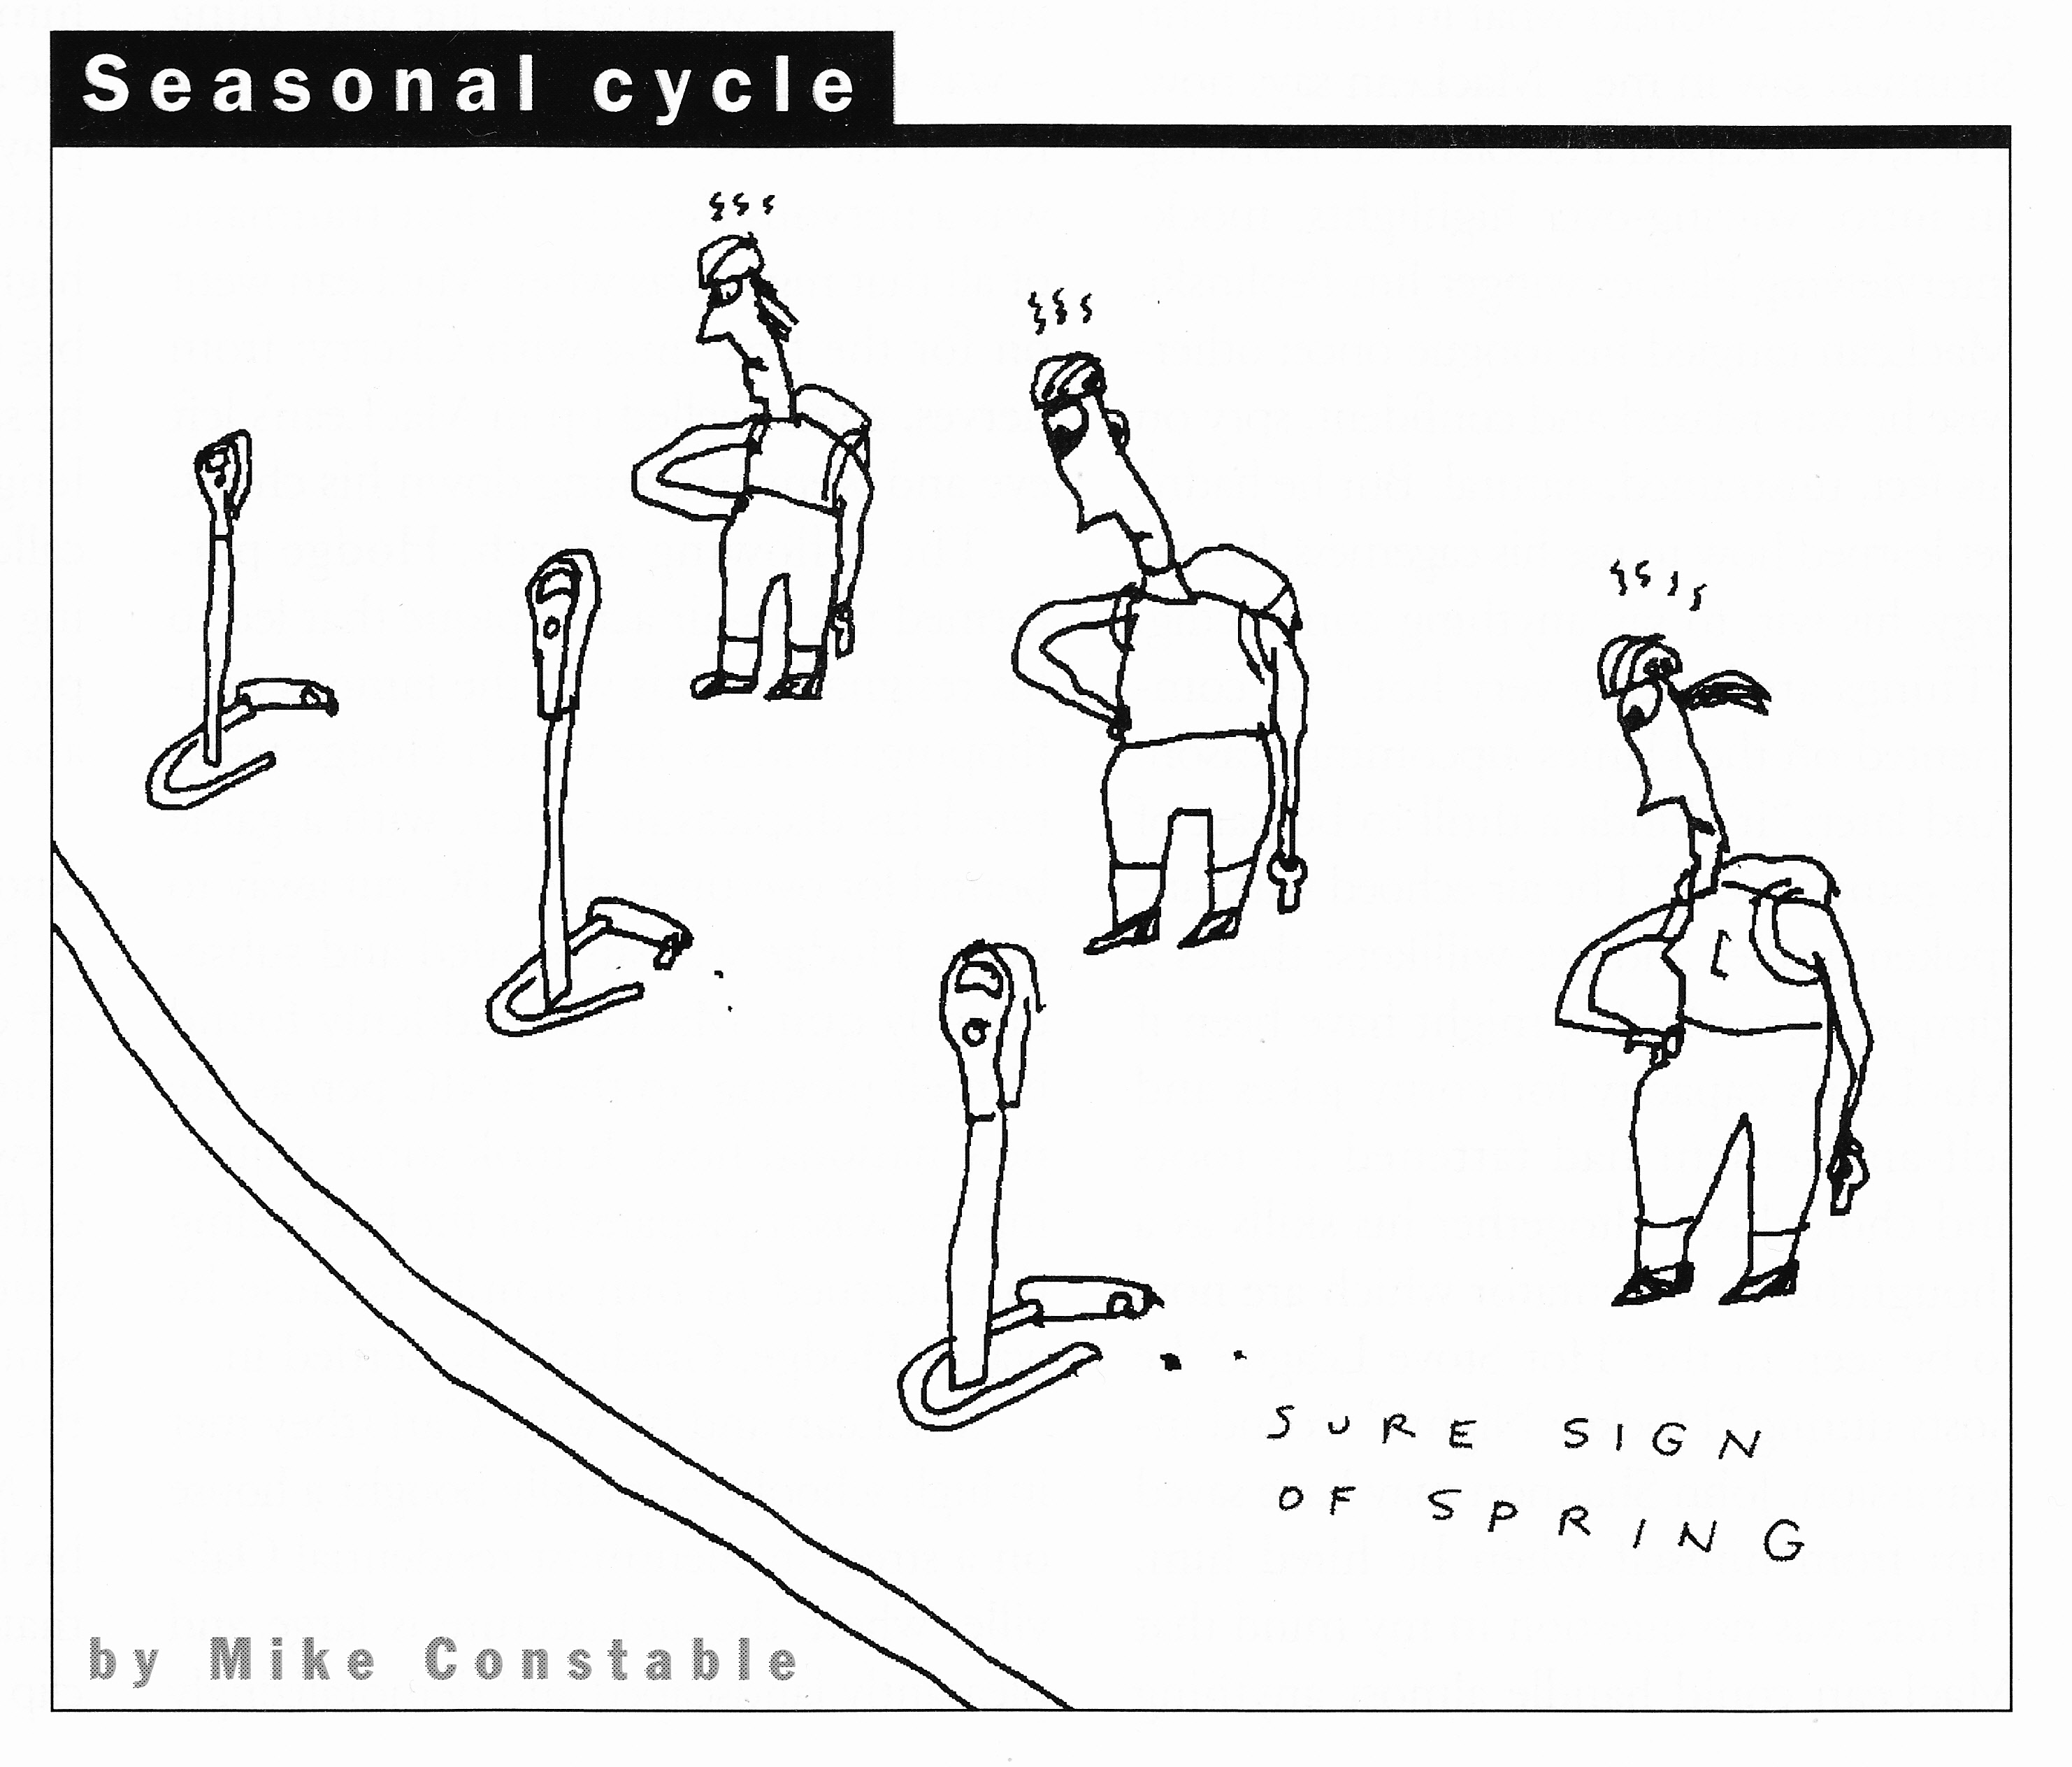 C:\Users\Robert\Documents\CARTOONING ILLUSTRATION ANIMATION\IMAGE BY CARTOONIST\C\CONSTABLE MIKE, Saturday Night, April 1996, 100.jpg